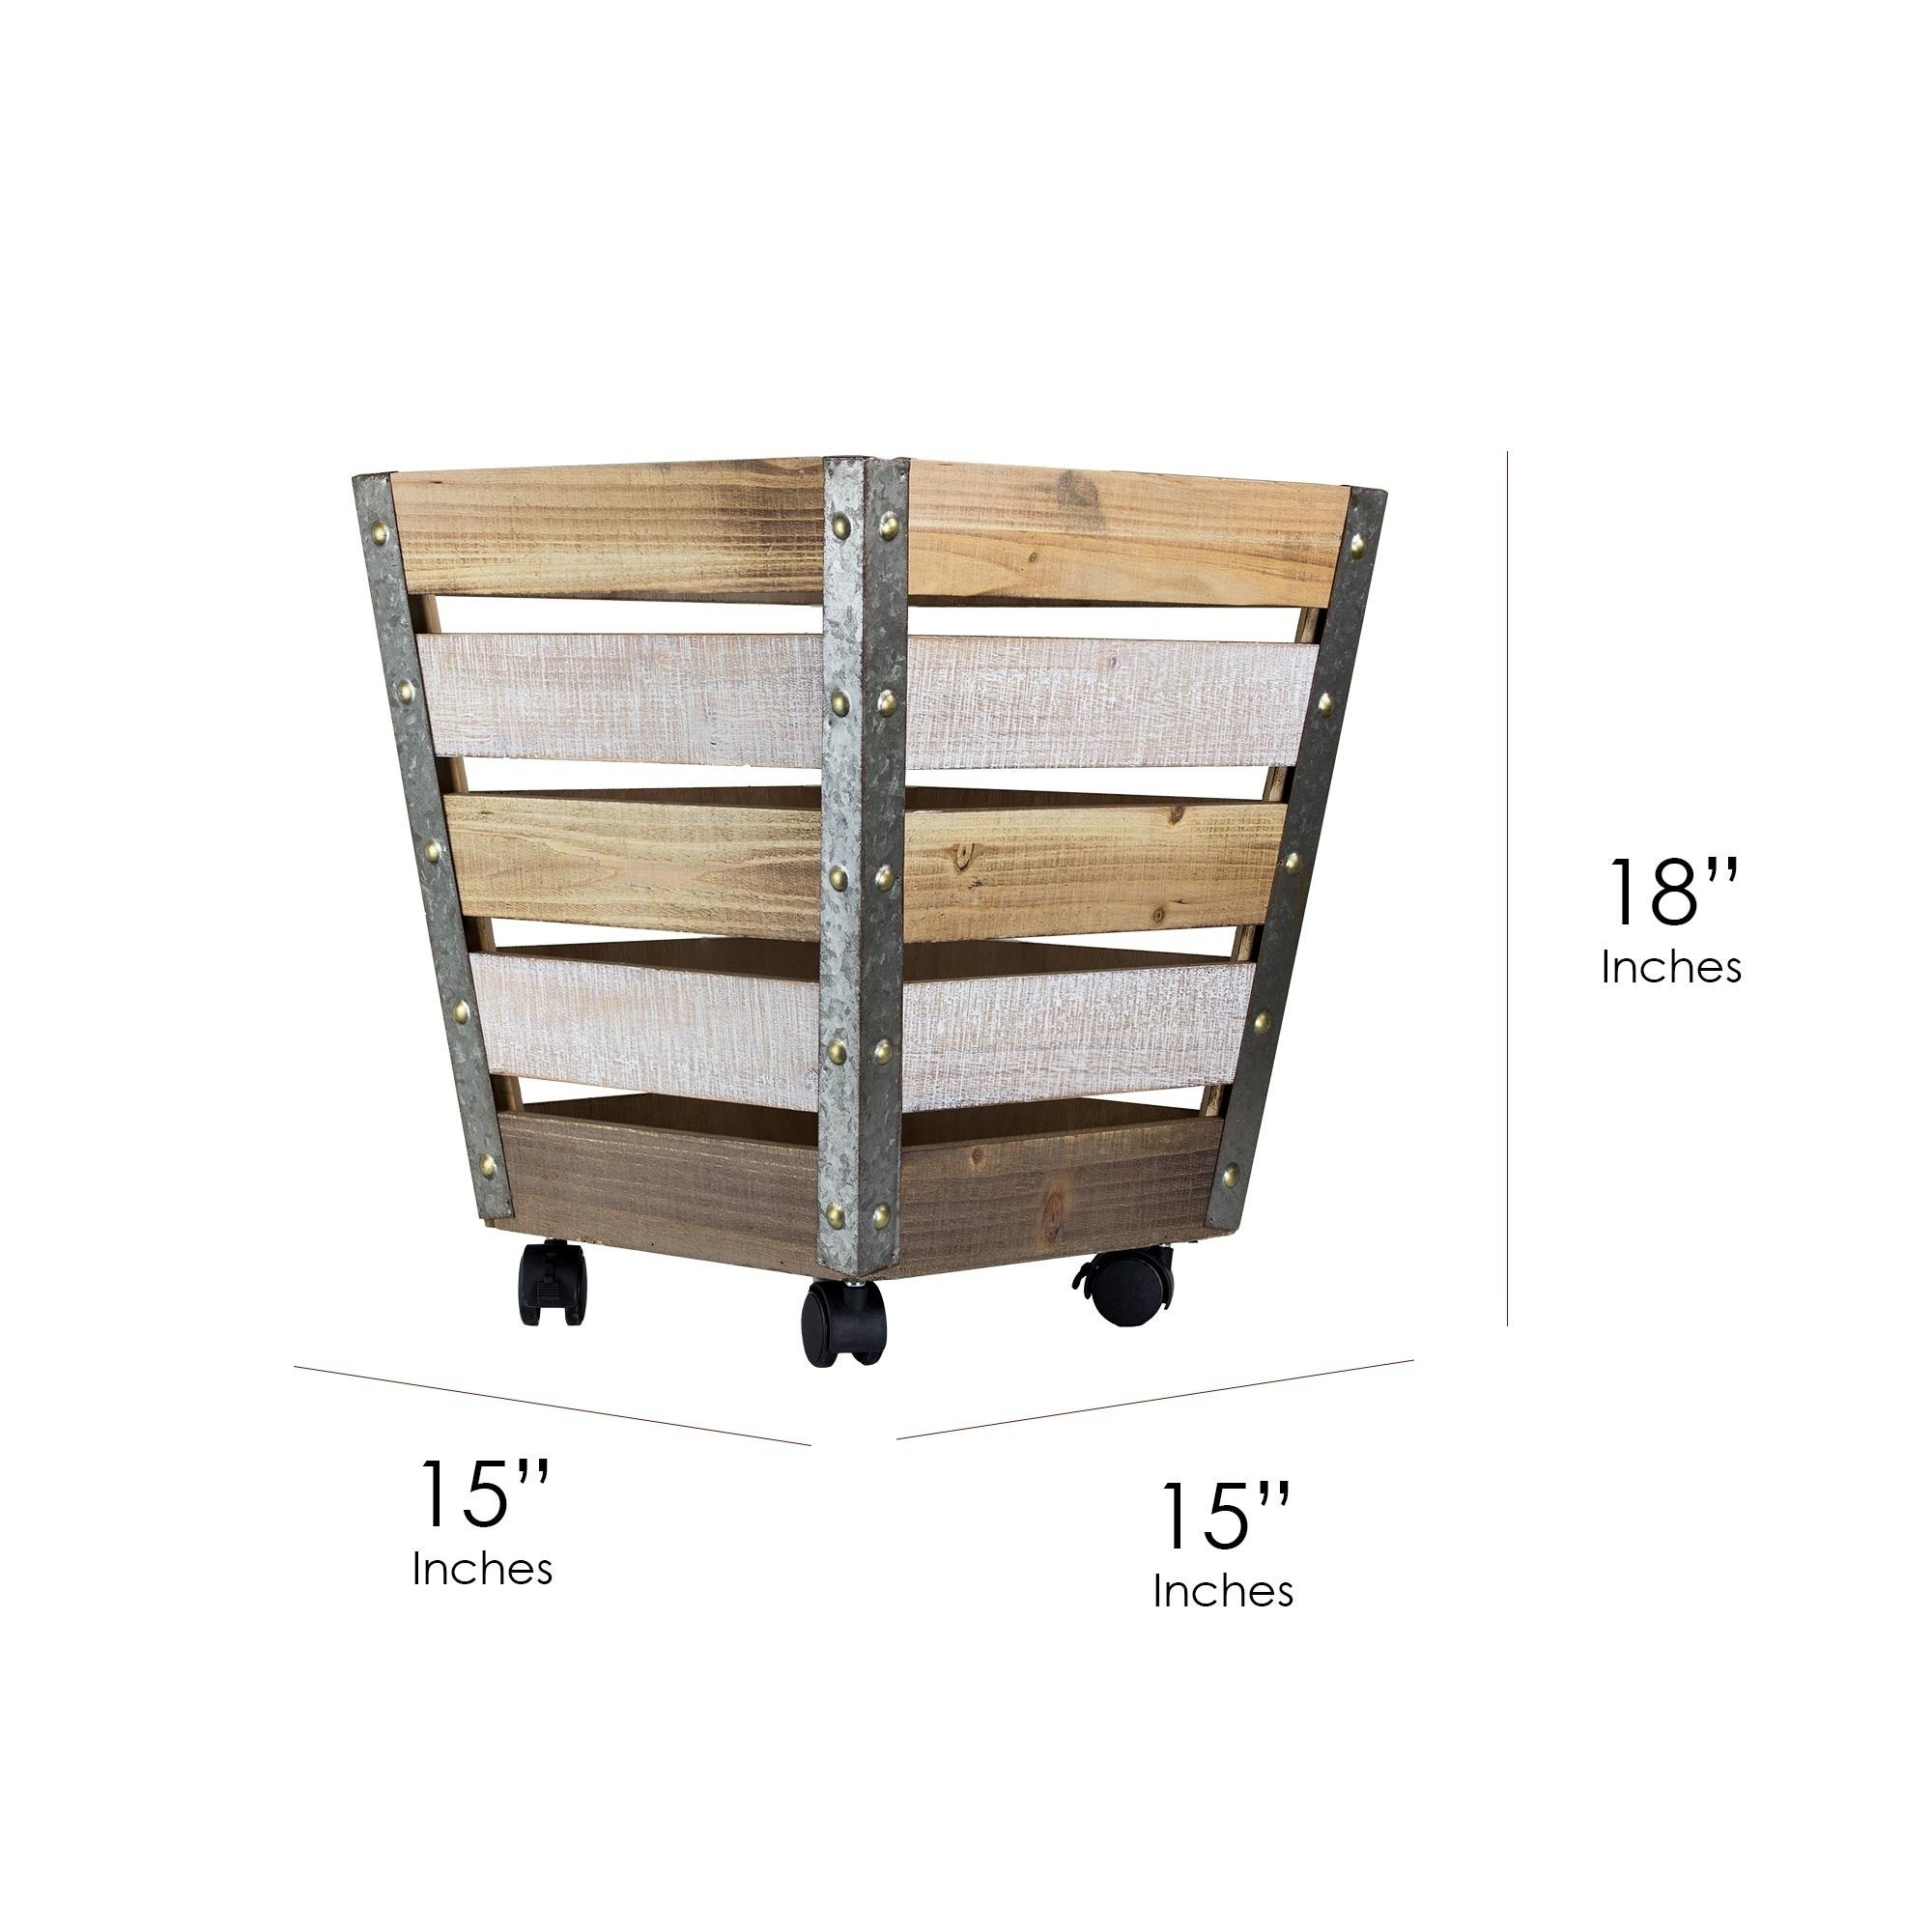 Shop American Art Decor Large Storage Crate With Wheels   Free Shipping  Today   Overstock.com   20466098